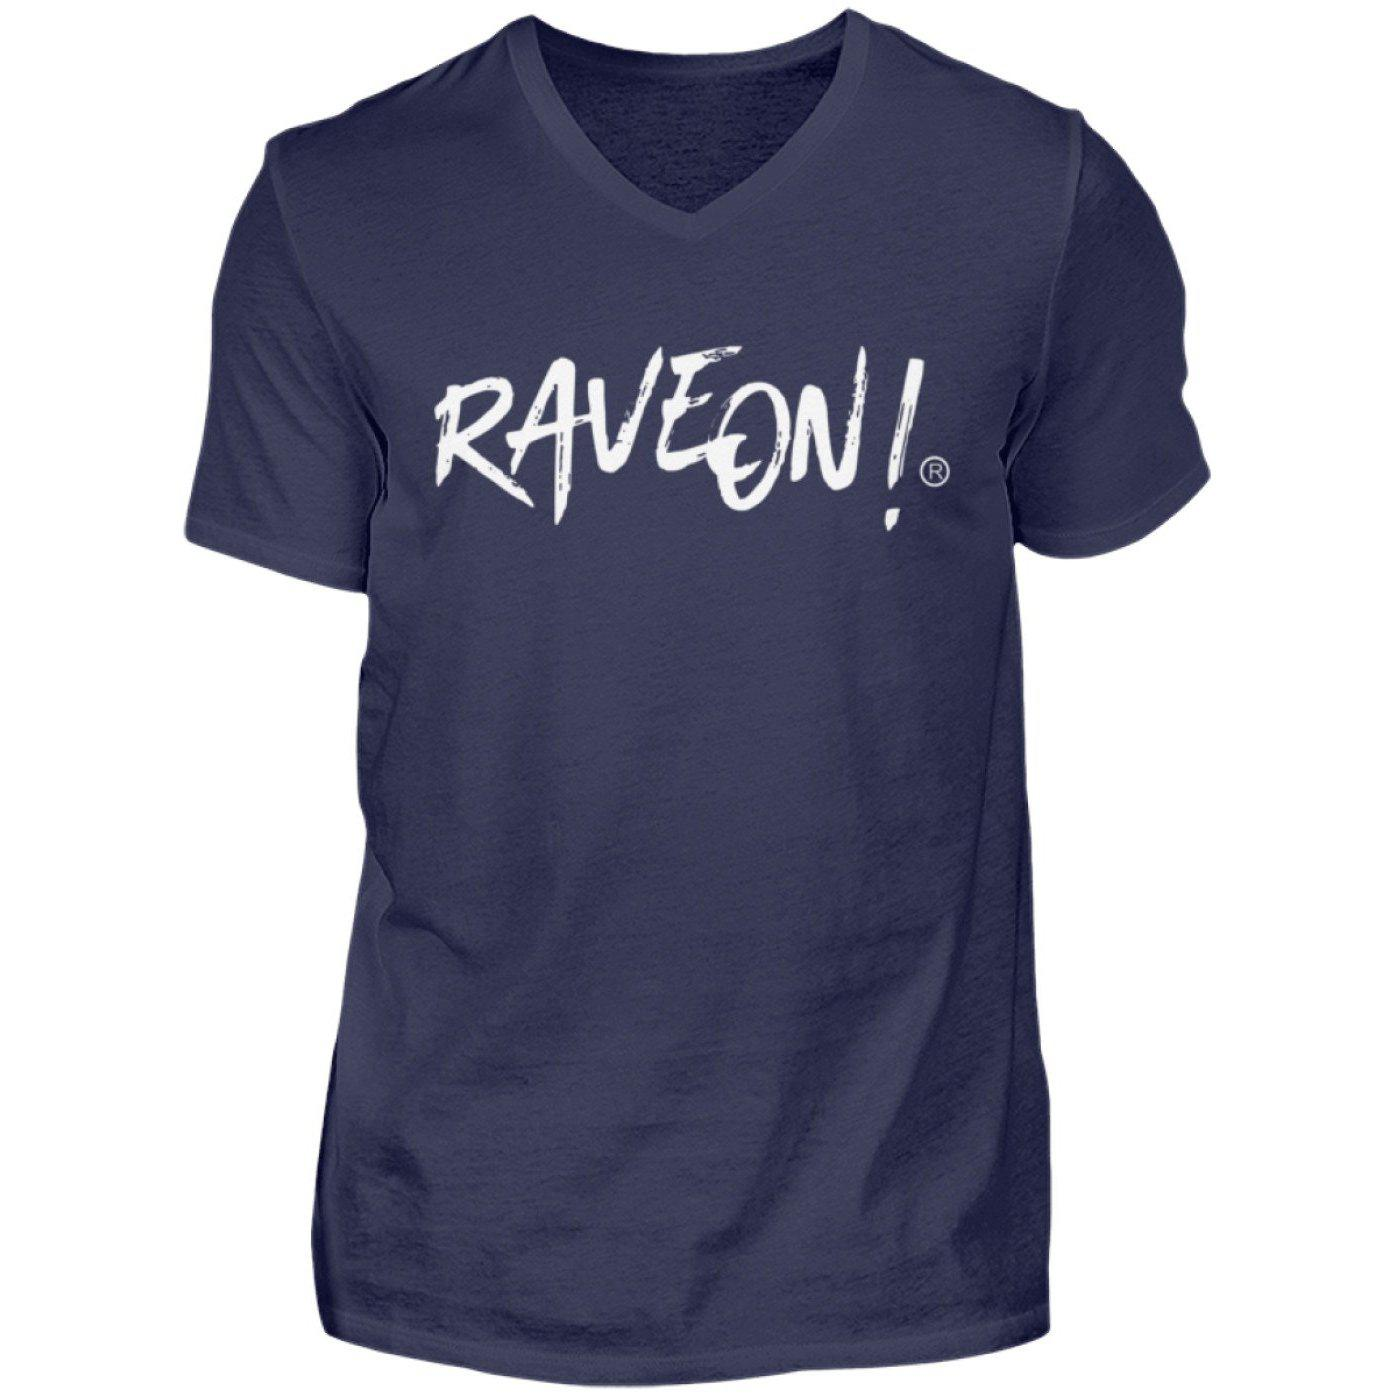 RAVE ON!® Side Black Collection - Herren V-Neck Shirt V-Neck Herrenshirt Dunkel-Blau / S - Rave On!® der Club & Techno Szene Shop für Coole Junge Mode Streetwear Style & Fashion Outfits + Sexy Festival 420 Stuff